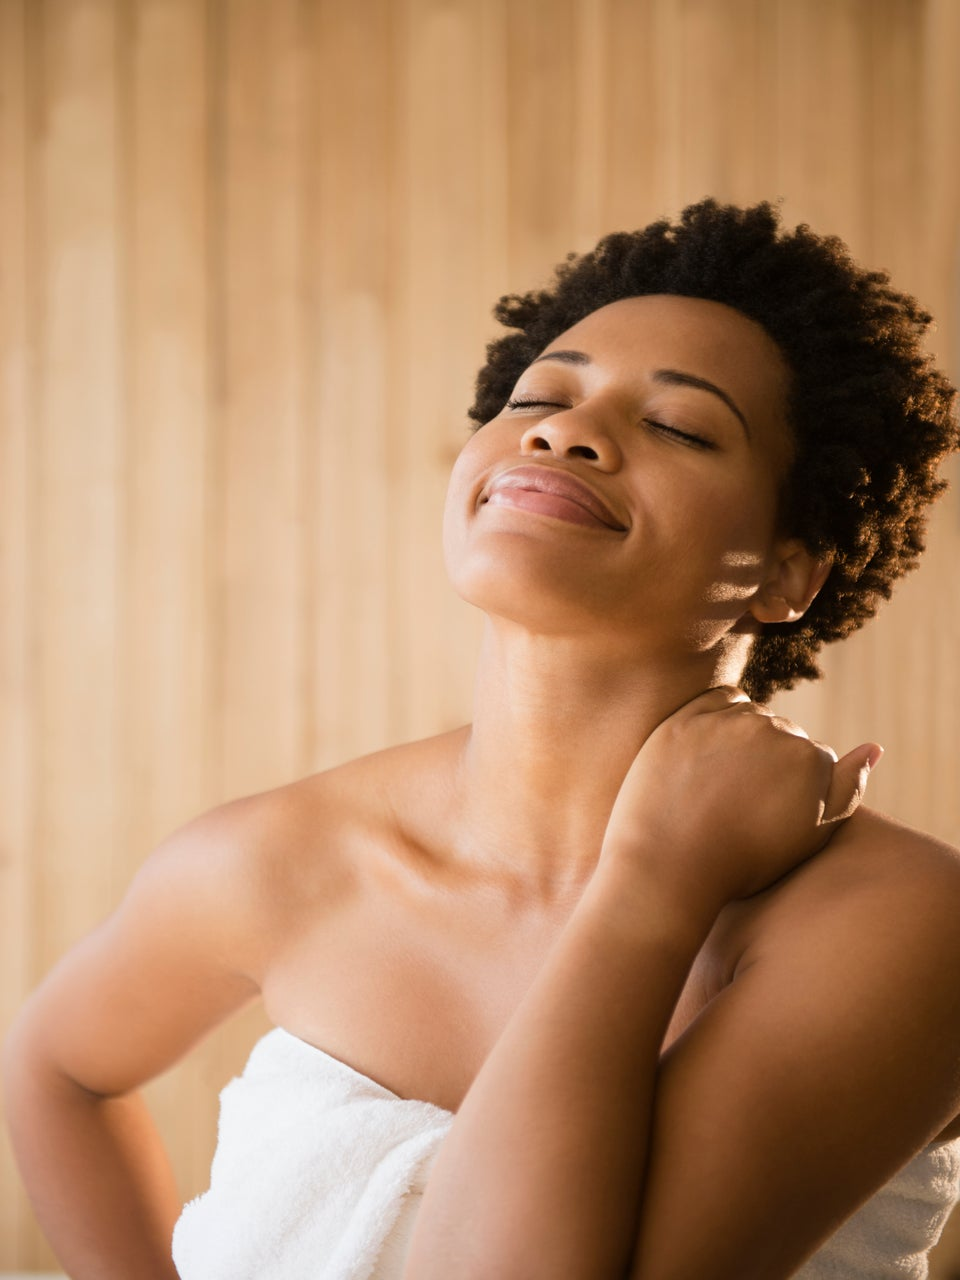 Recalibrate Your Black Girl Magic With These Unique Spa Getaways